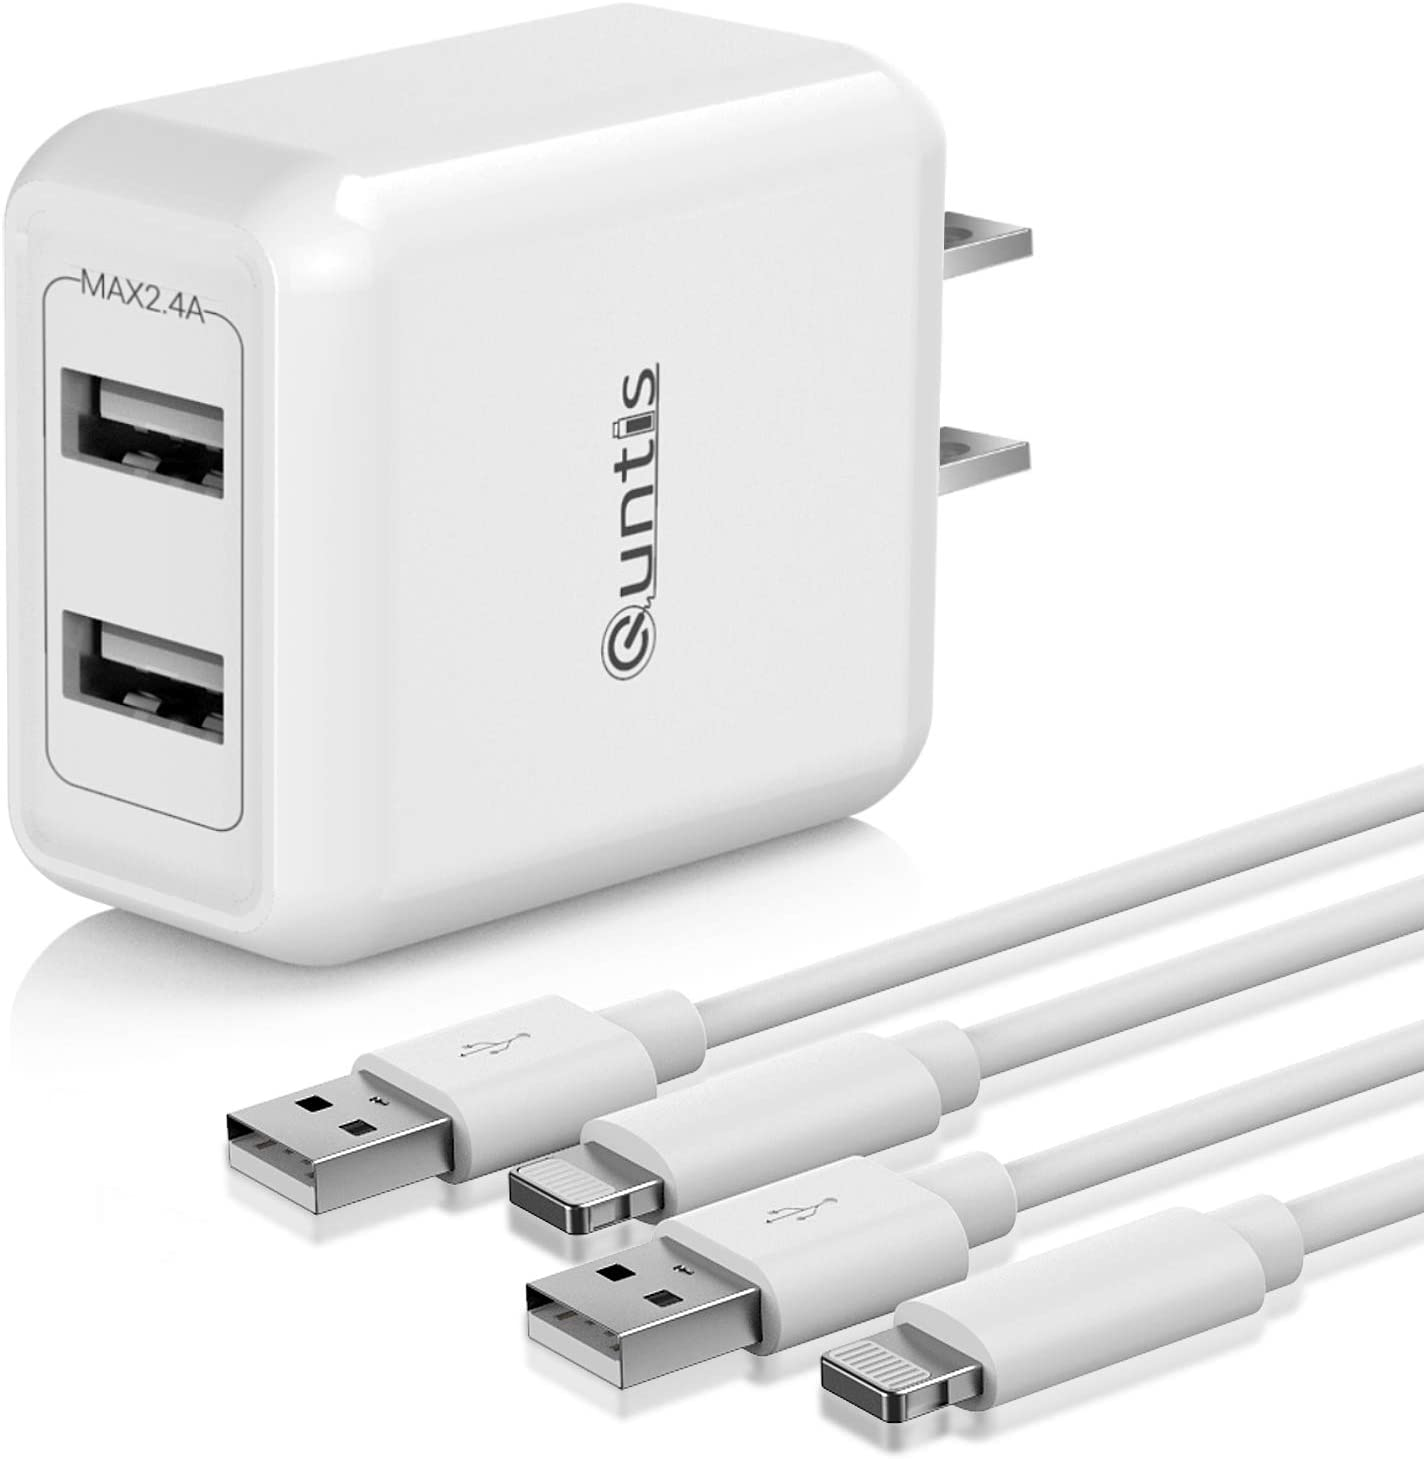 iPhone Charger MFi Certified, Quntis 2Pack 6.6ft Lightning Charging Cable Cord with Dual Port USB Wall Charger Block Adapter for iPhone 12 SE 11 Pro Max XS XR X 8 7 6s 6 Plus iPad Pro iPod Airpods